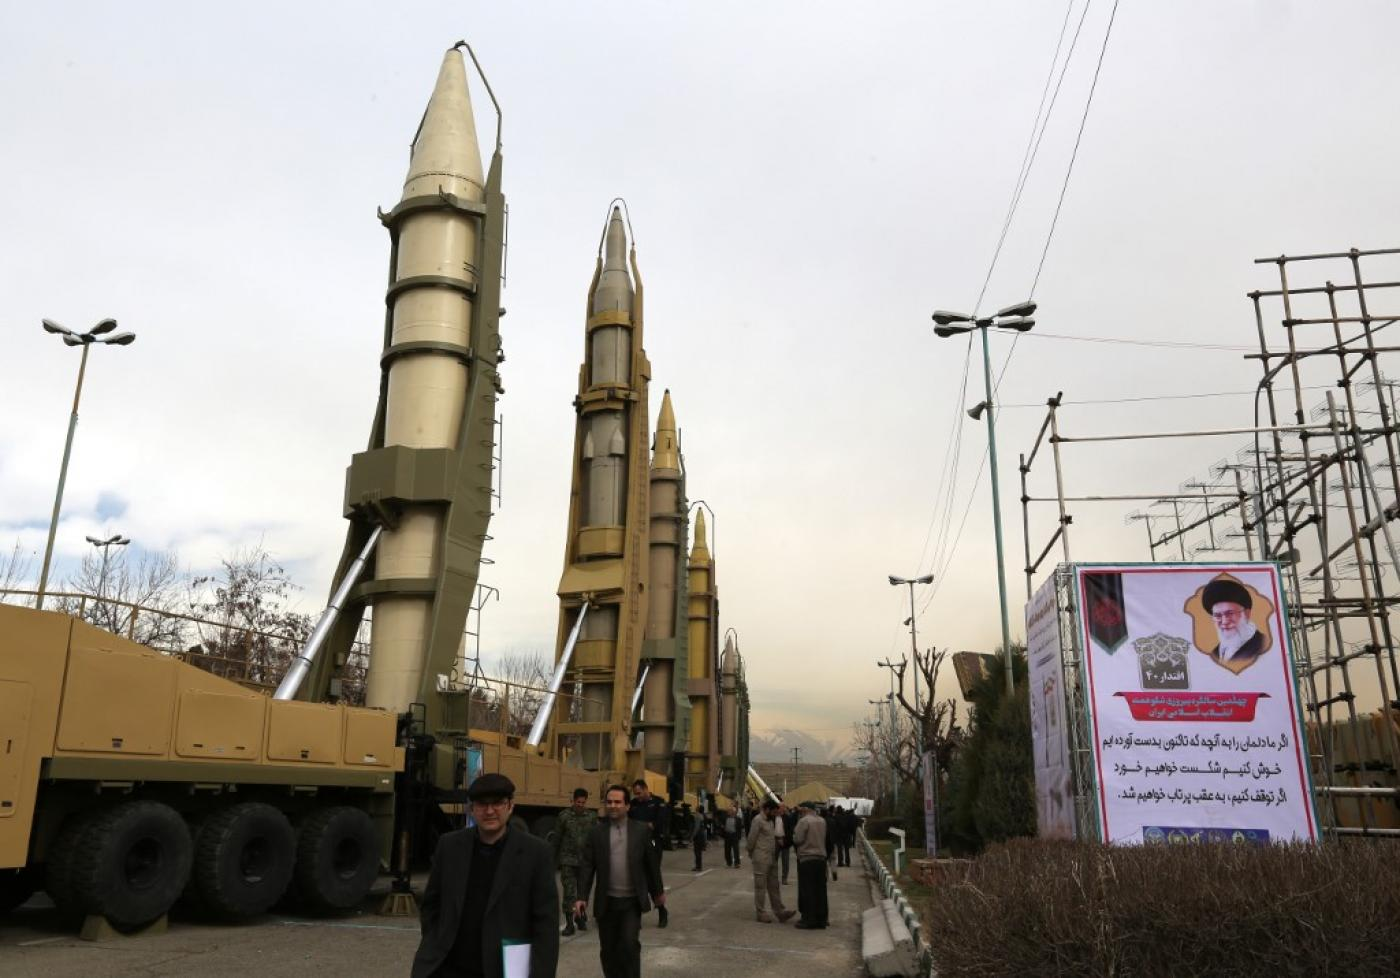 Iranians visit a weaponry and military equipment exhibition in the capital Tehran in February 2019.